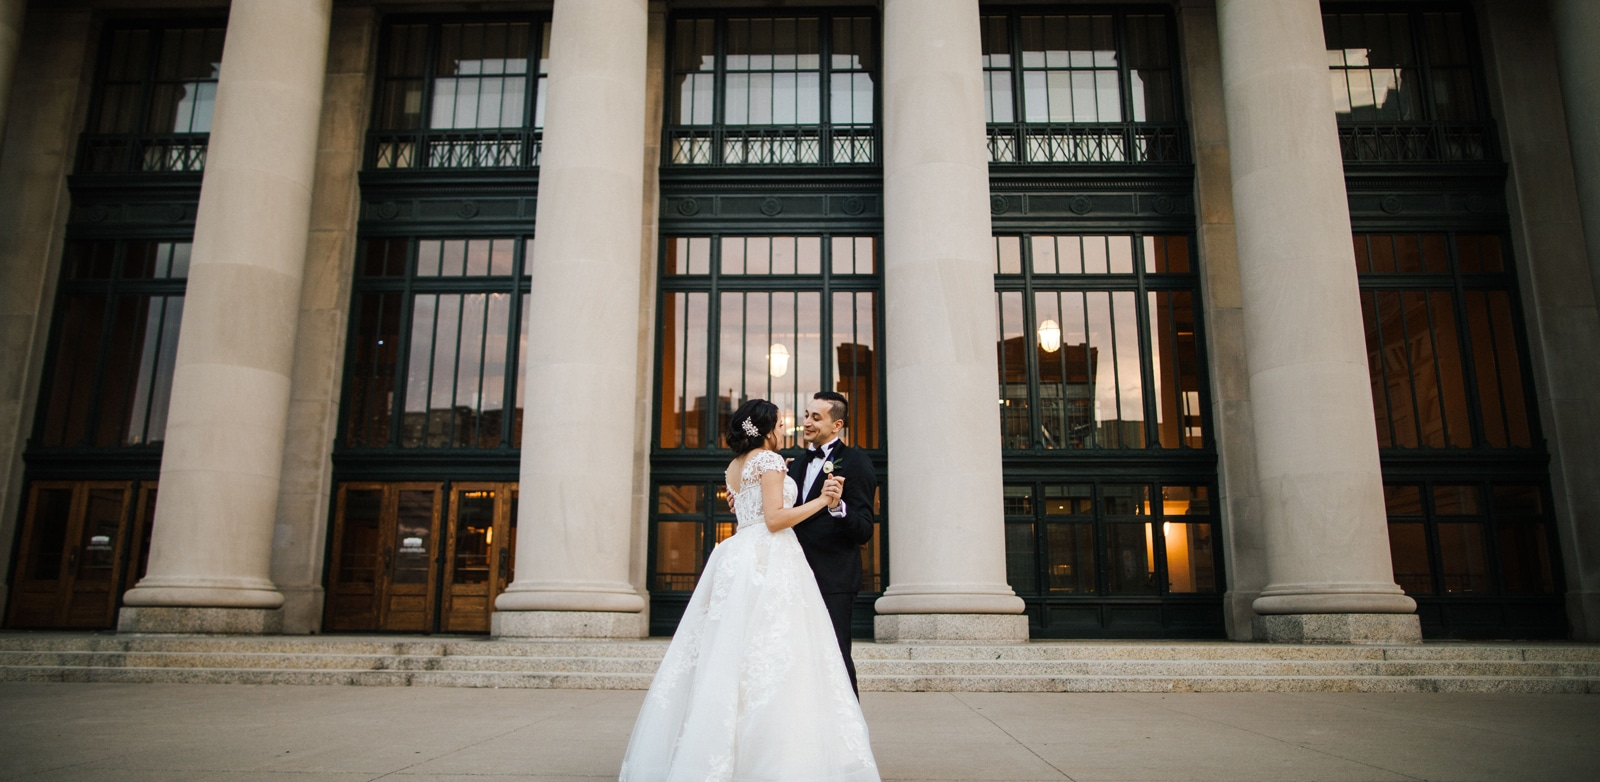 Wedding in front of Union Depot